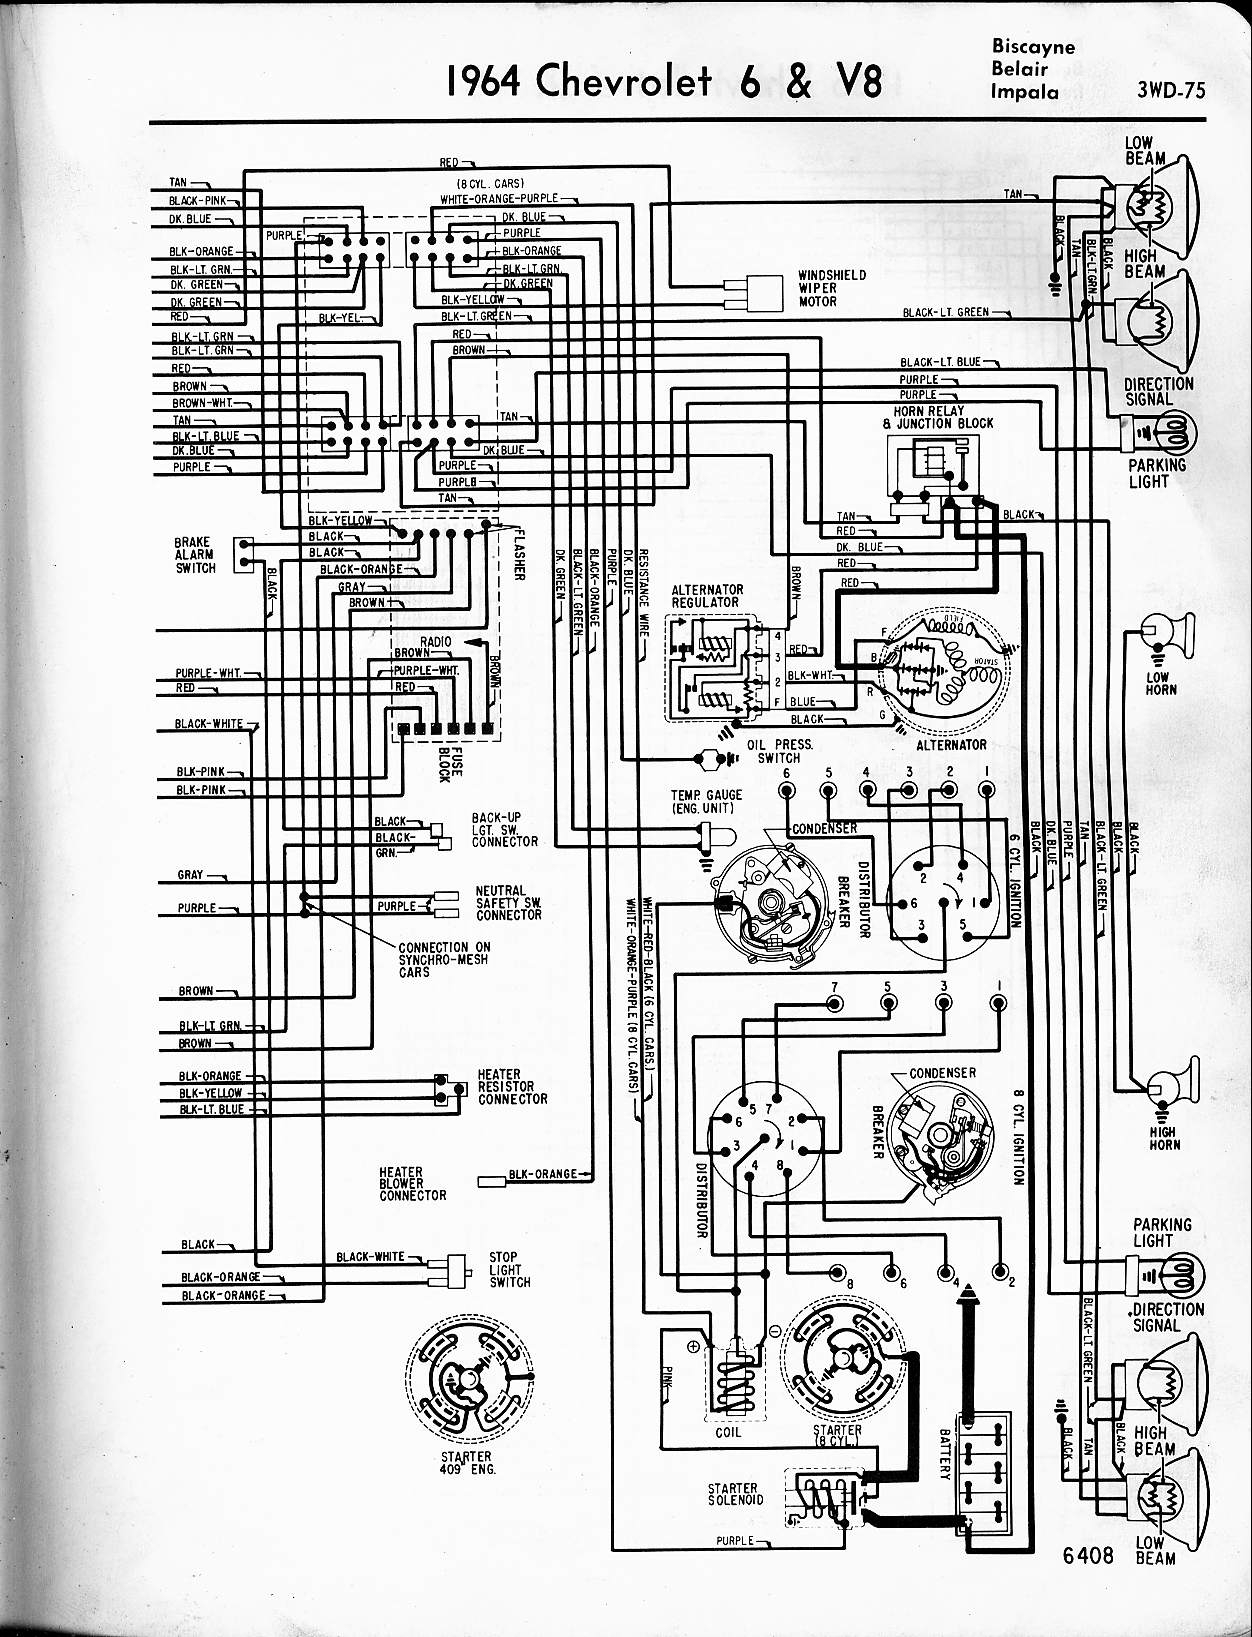 2006 chevy impala wiring diagram Collection-1964 6 & V8 Biscayne Belair Impala 19-m